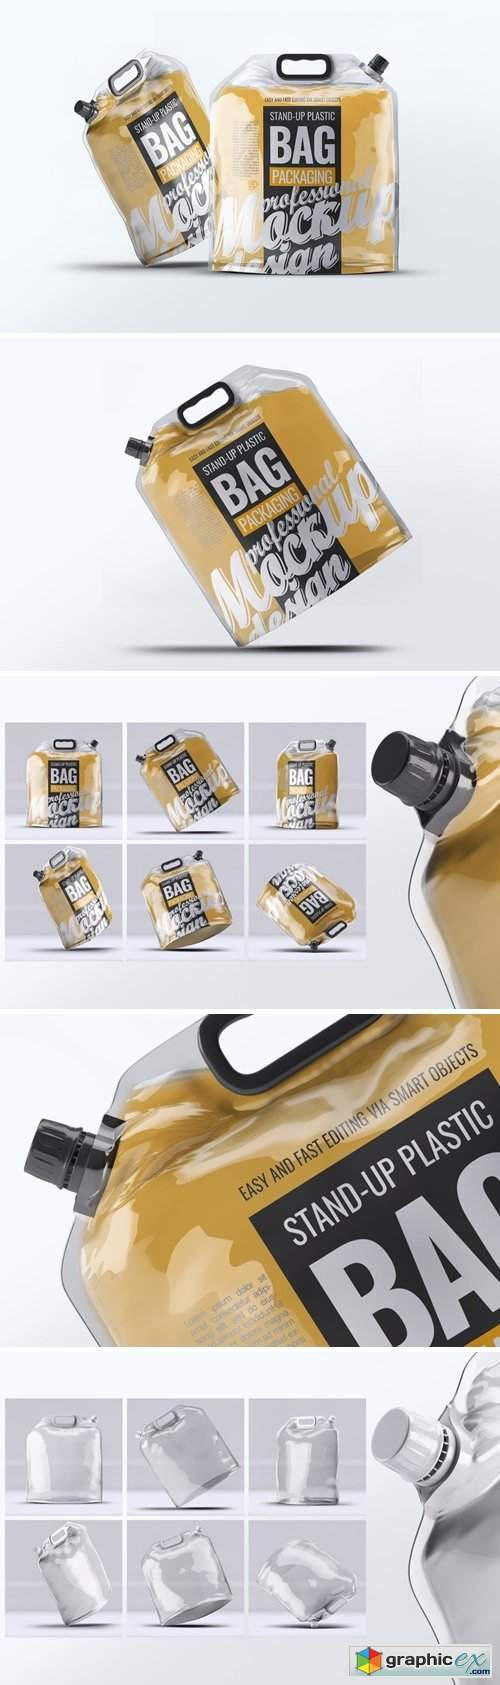 Stand-up Plastic Packaging Bag Mock-Up